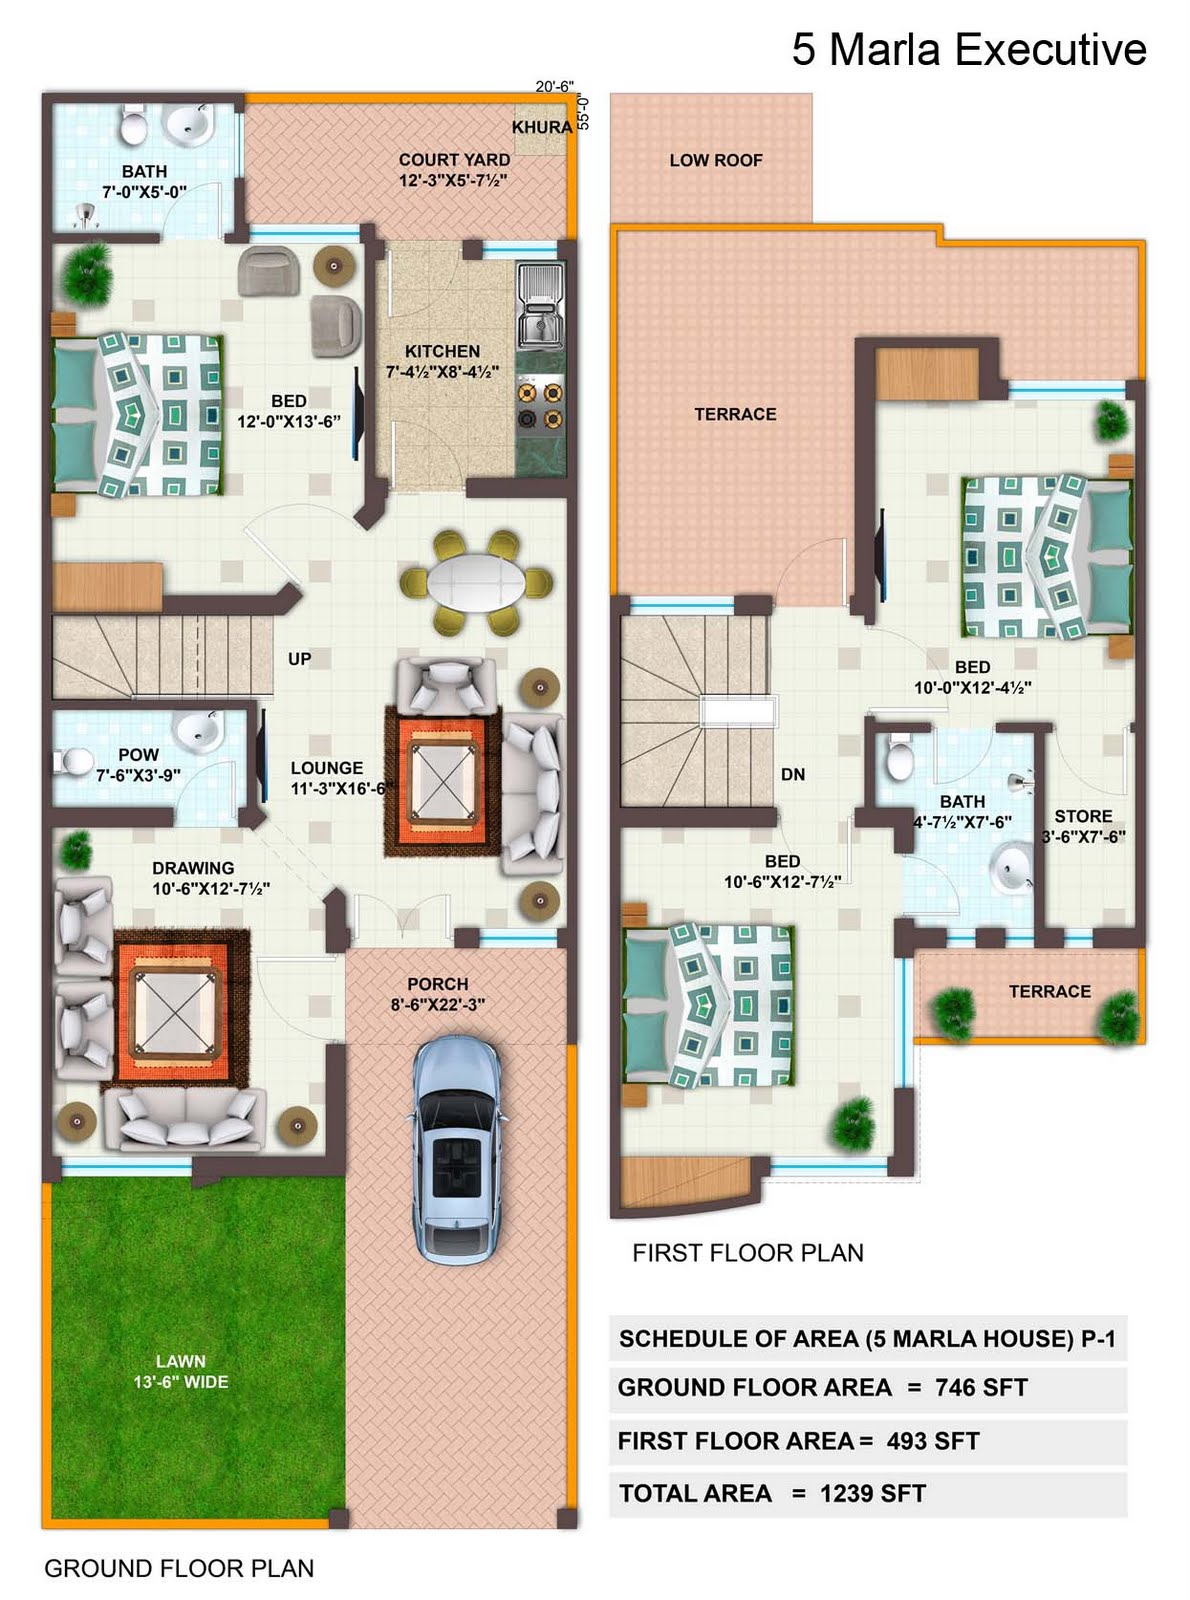 5 Marla House Floor Plan http://propertyrealvalue.blogspot.com/2011/09/imperial-garden-homes-plan.html